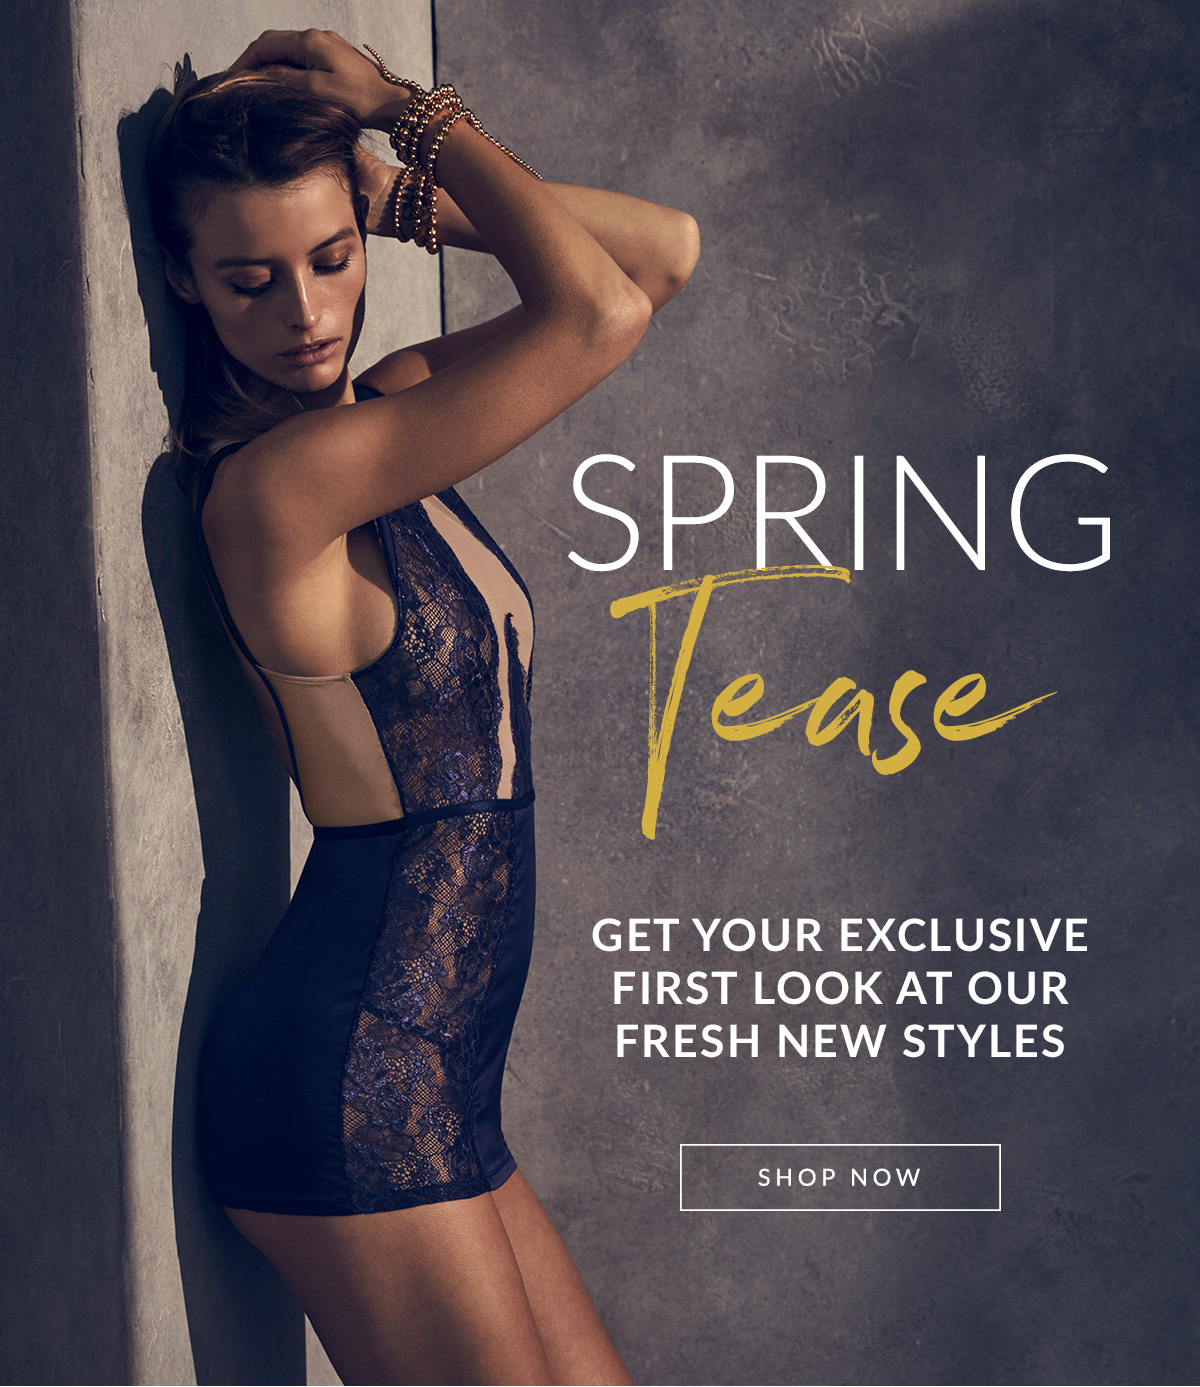 Spring Tease | Get Your Exclusive First Look At Our Fresh New Styles | Shop Now